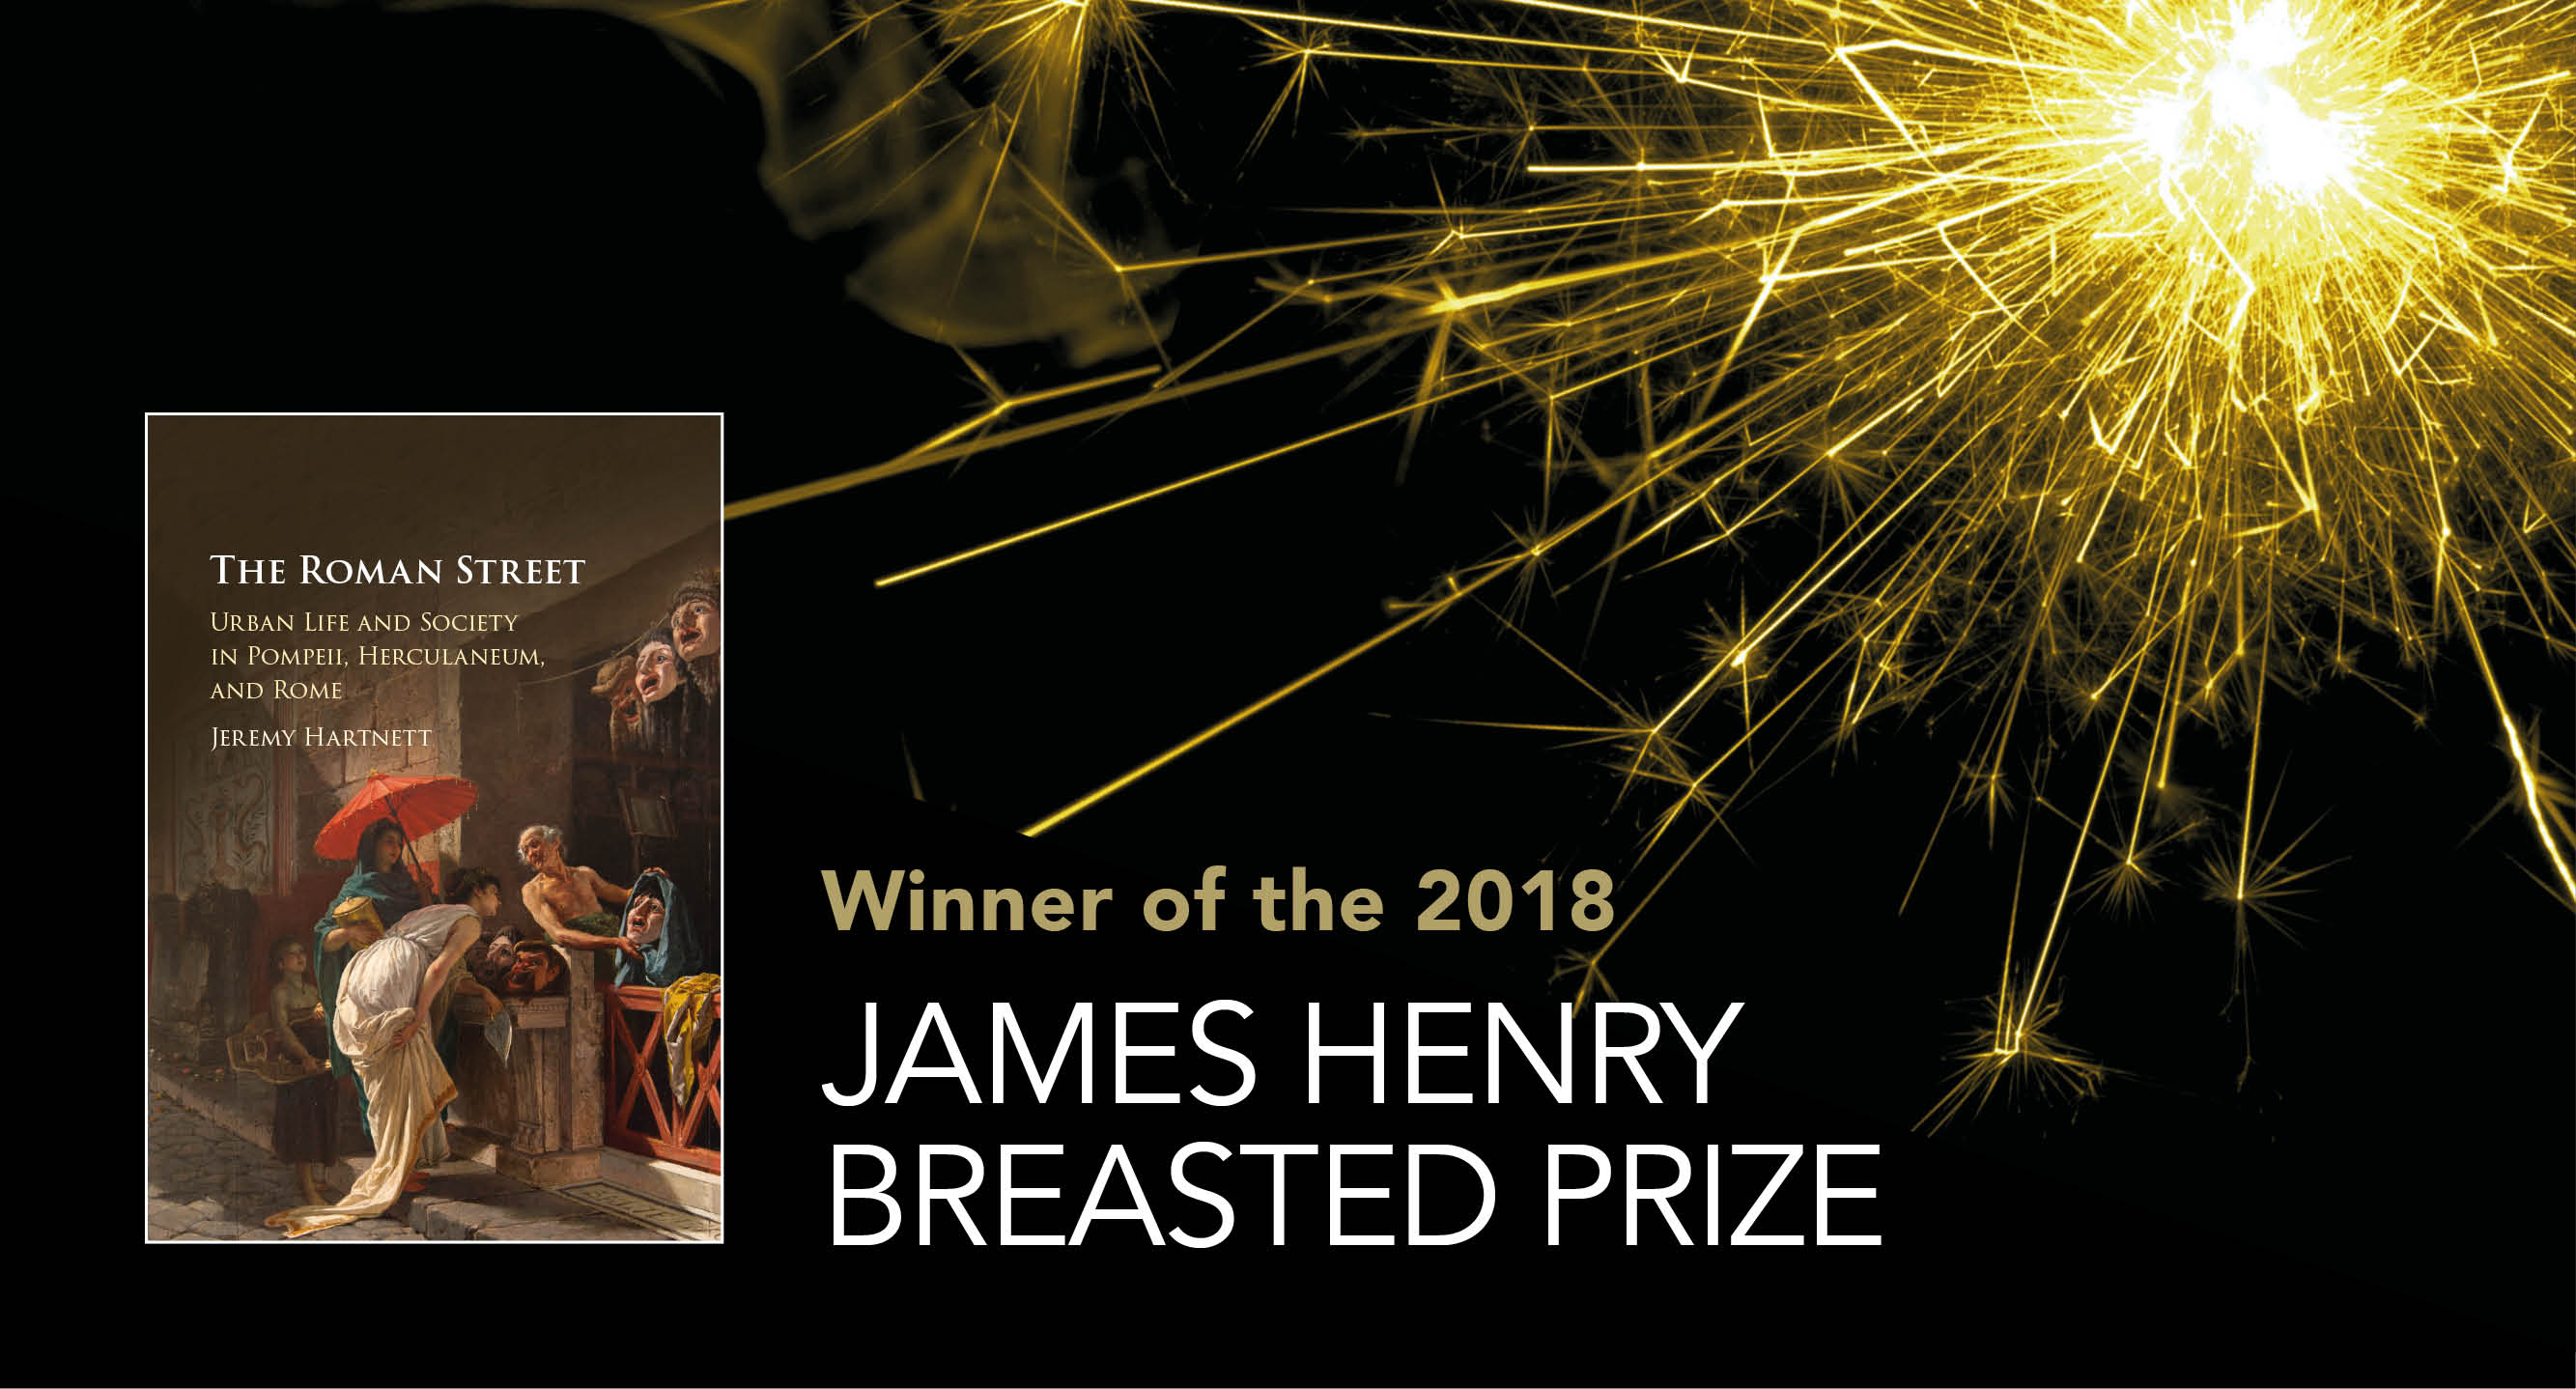 James Henry Breasted Prize